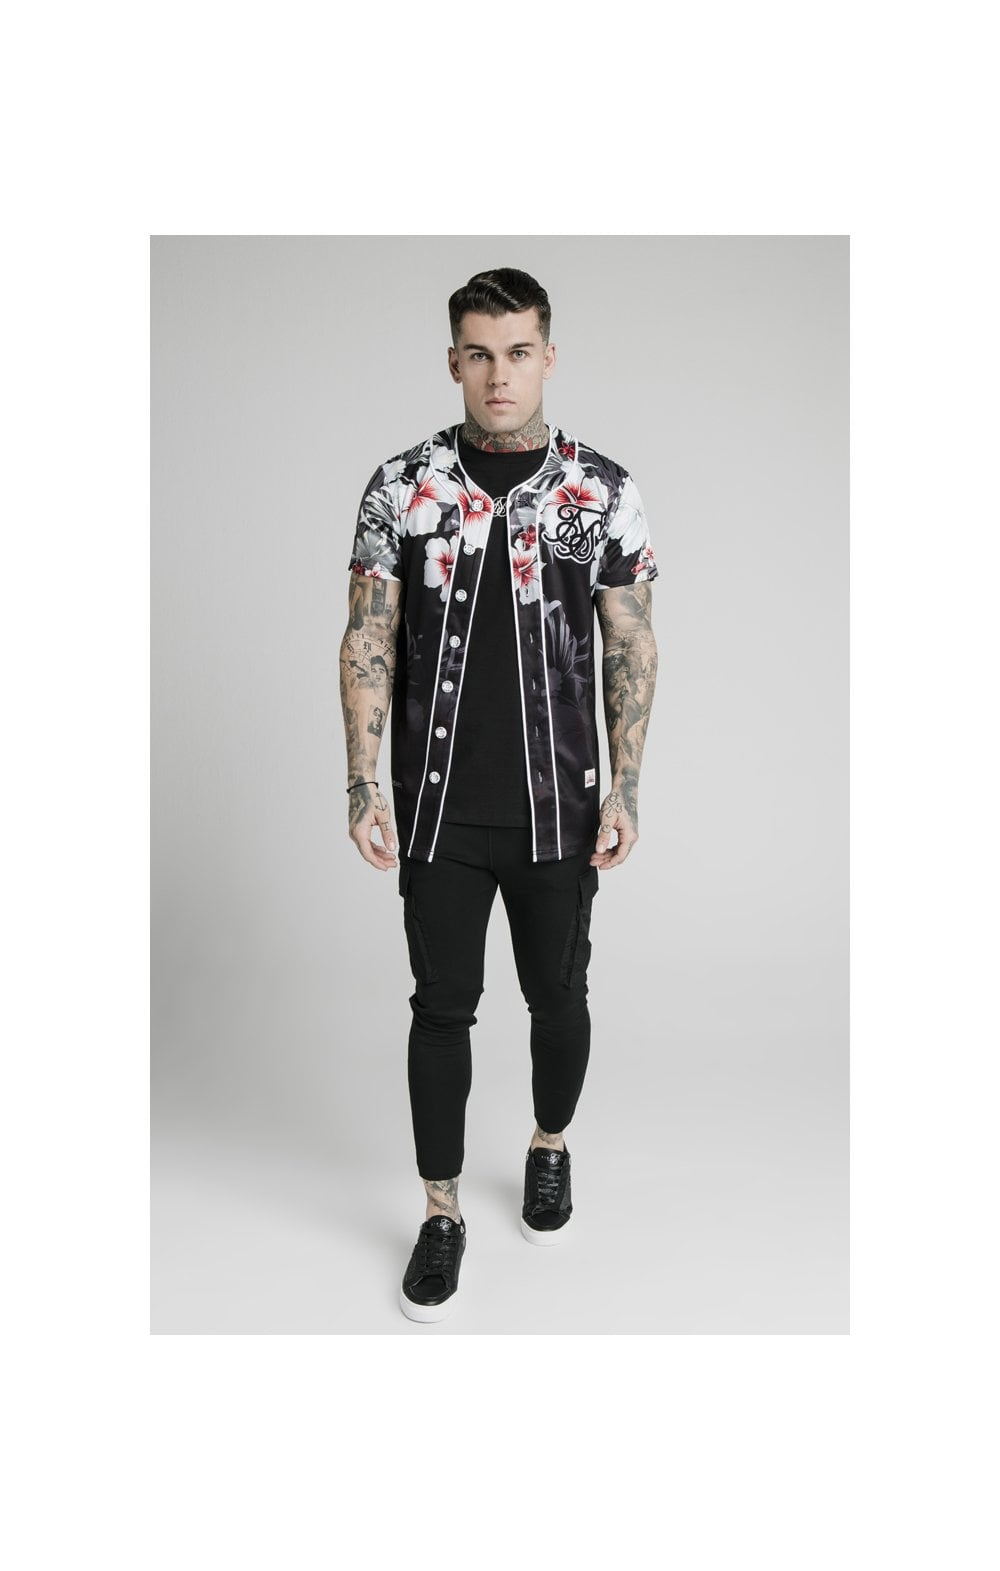 Load image into Gallery viewer, SikSilk Floral Baseball Jersey - Black (2)